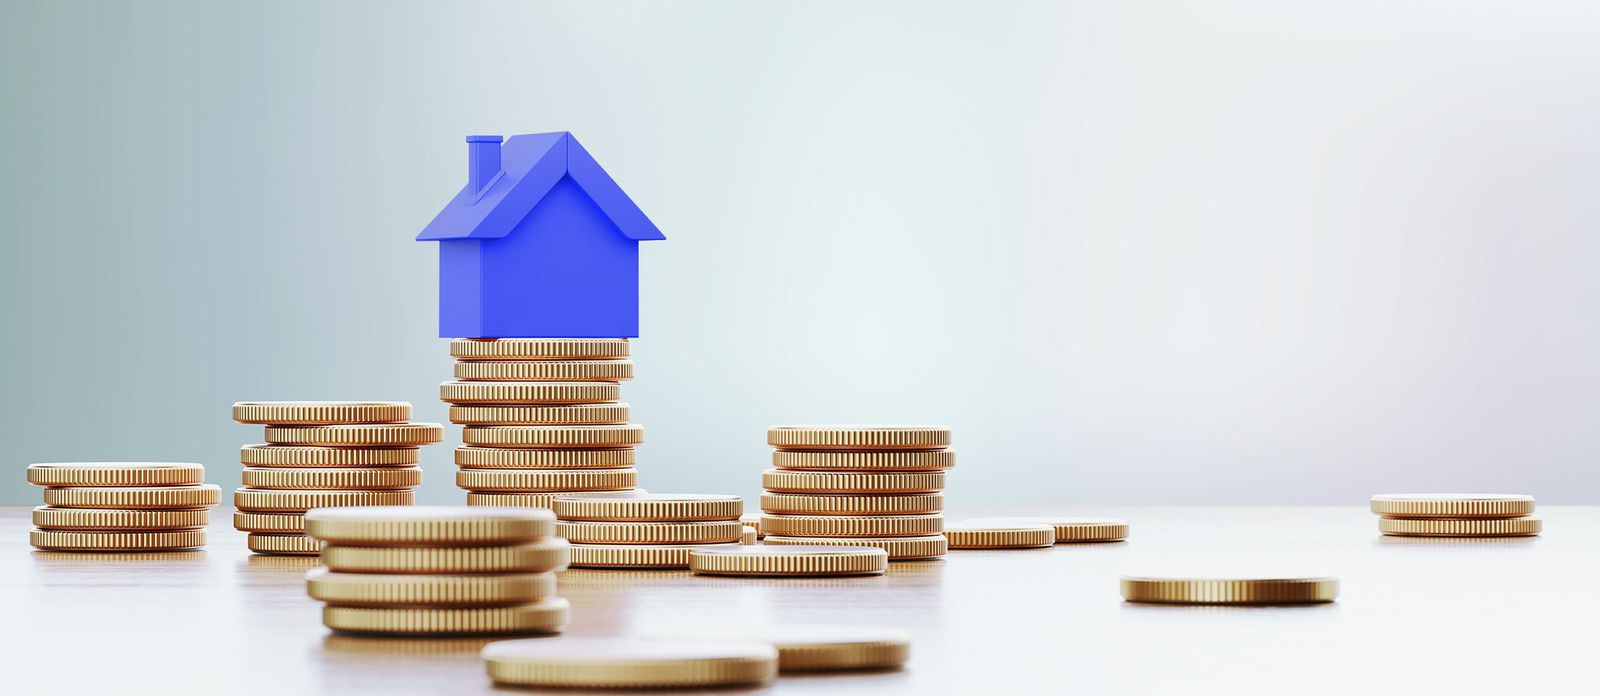 Coins and blue house. Saving for a Down Payment Where Should I Keep My Money?